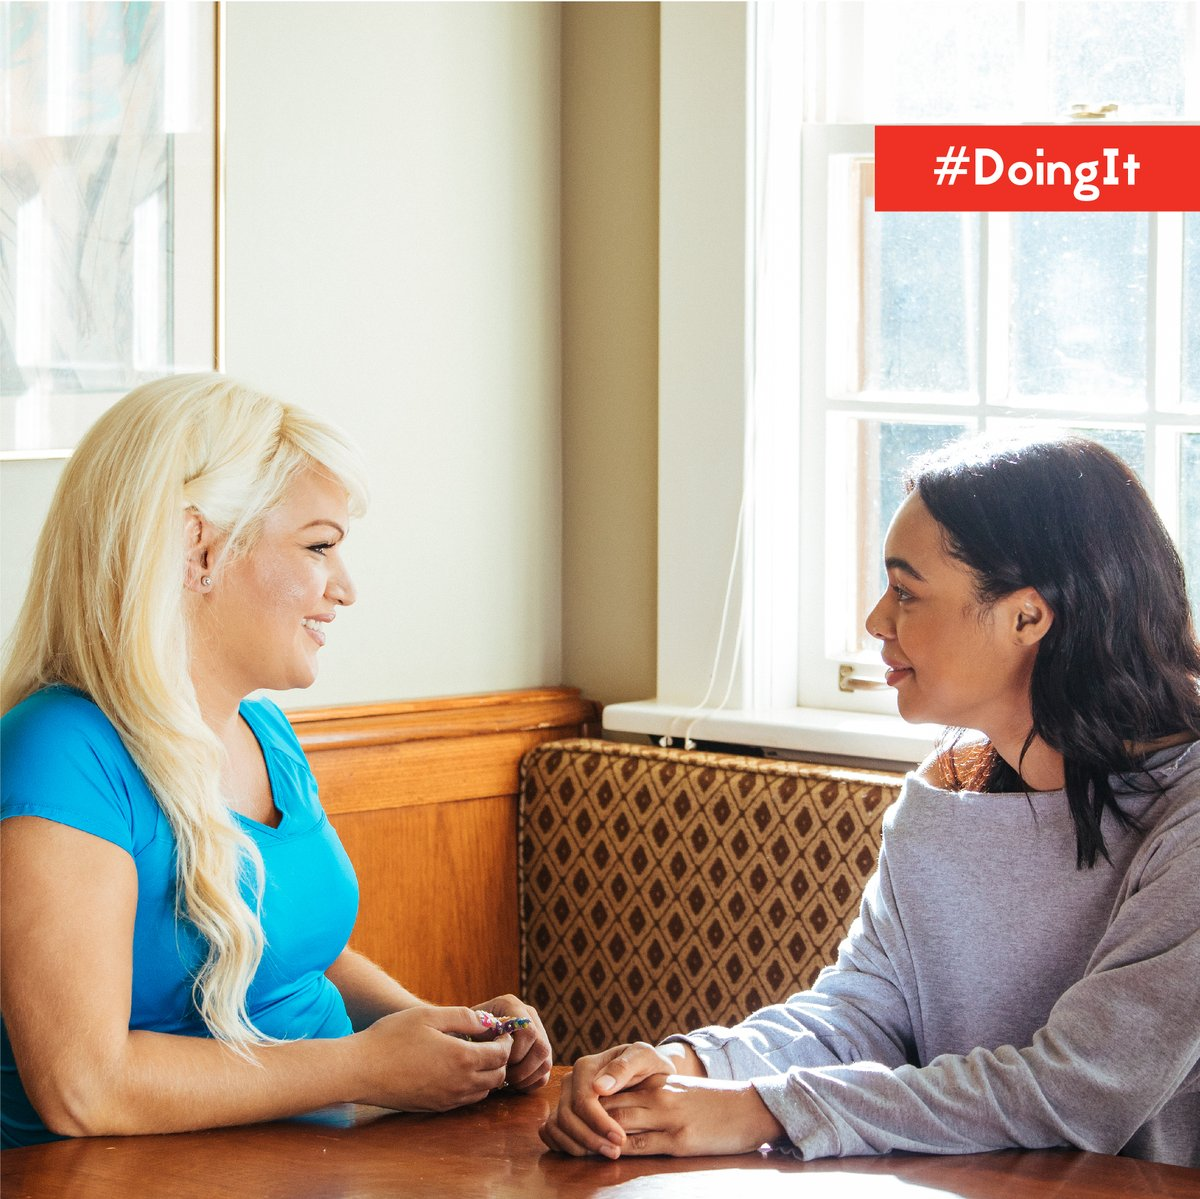 You don't have to do it alone! Invite a friend to go get tested for #HIV today and find out your status together! Find a location near you:  #DoingItTogether #StopHIVTogether